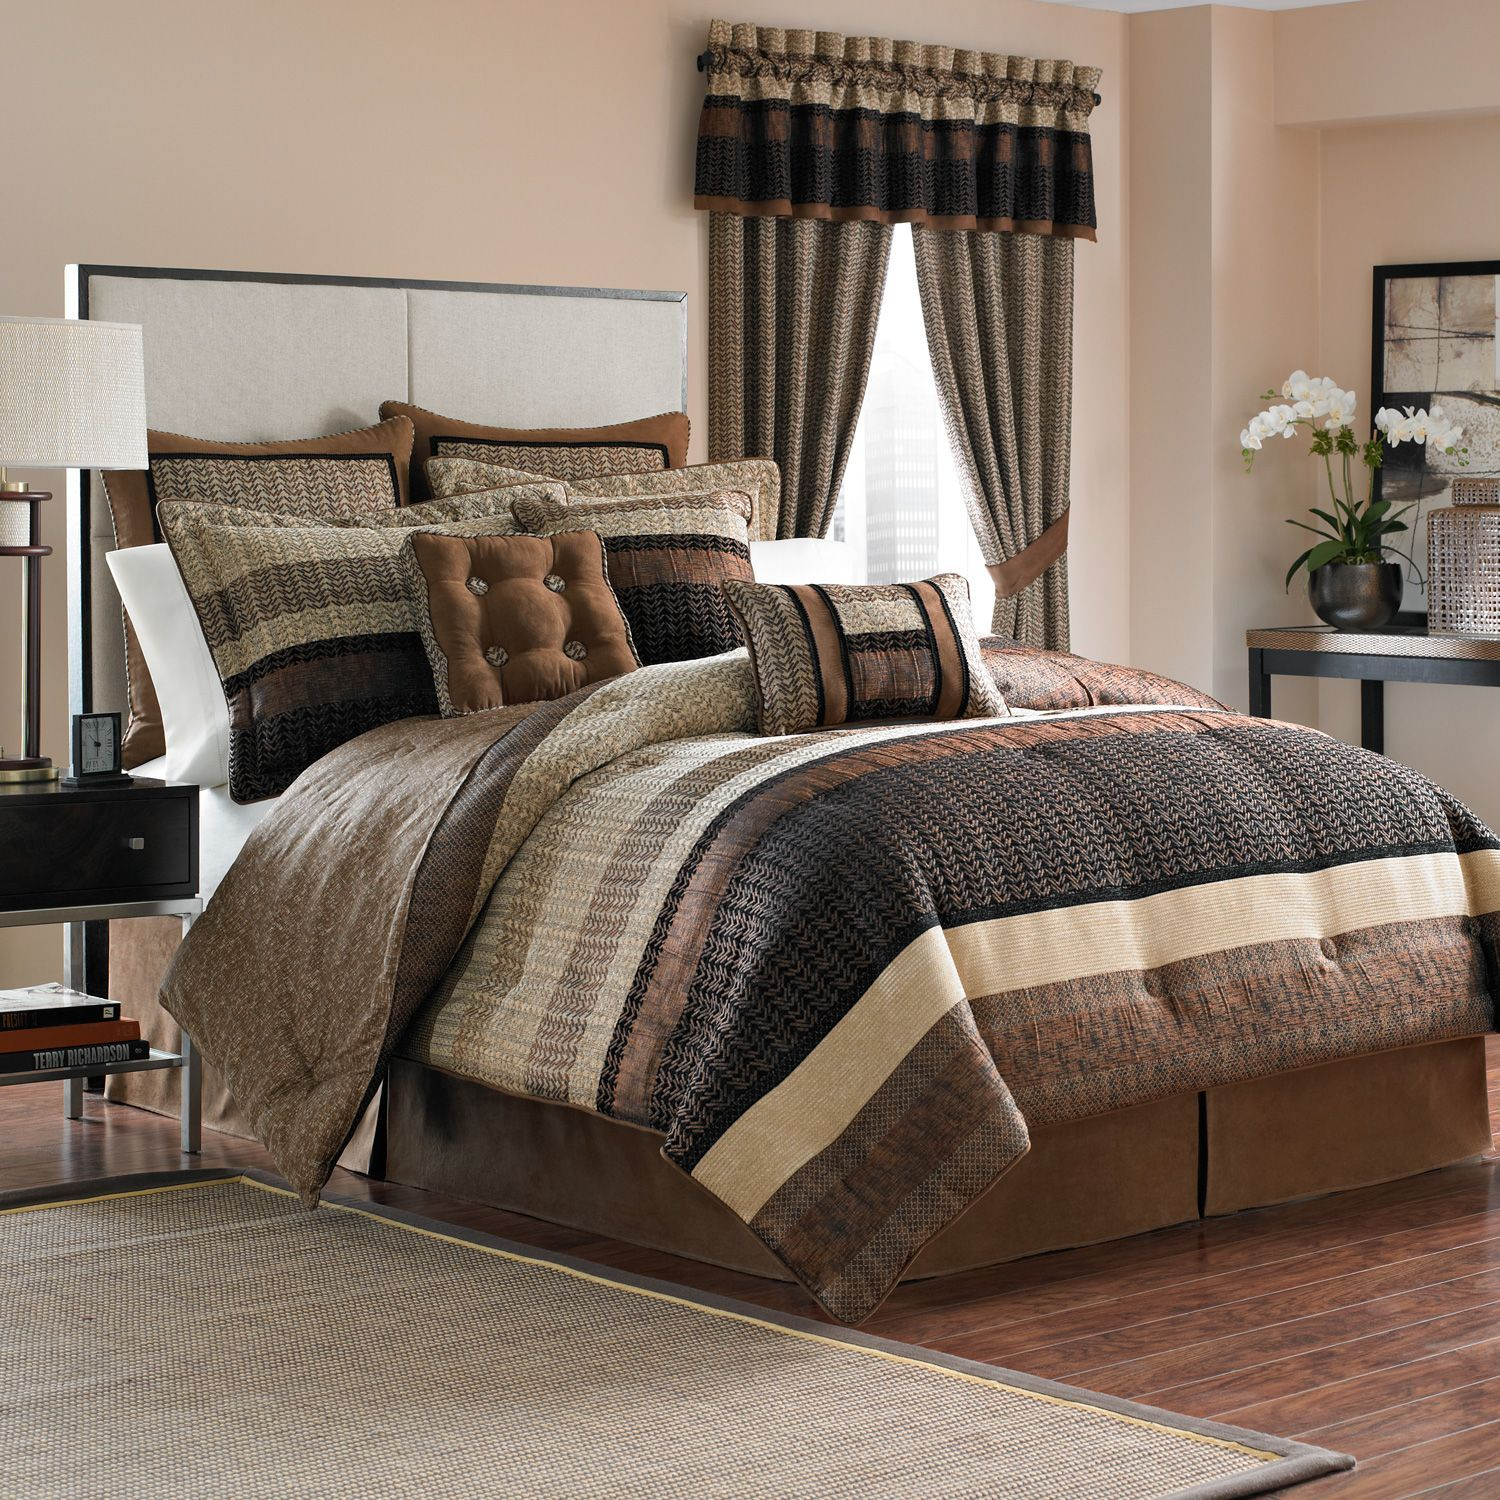 Chic California King Bedspreads For Bedroom Design